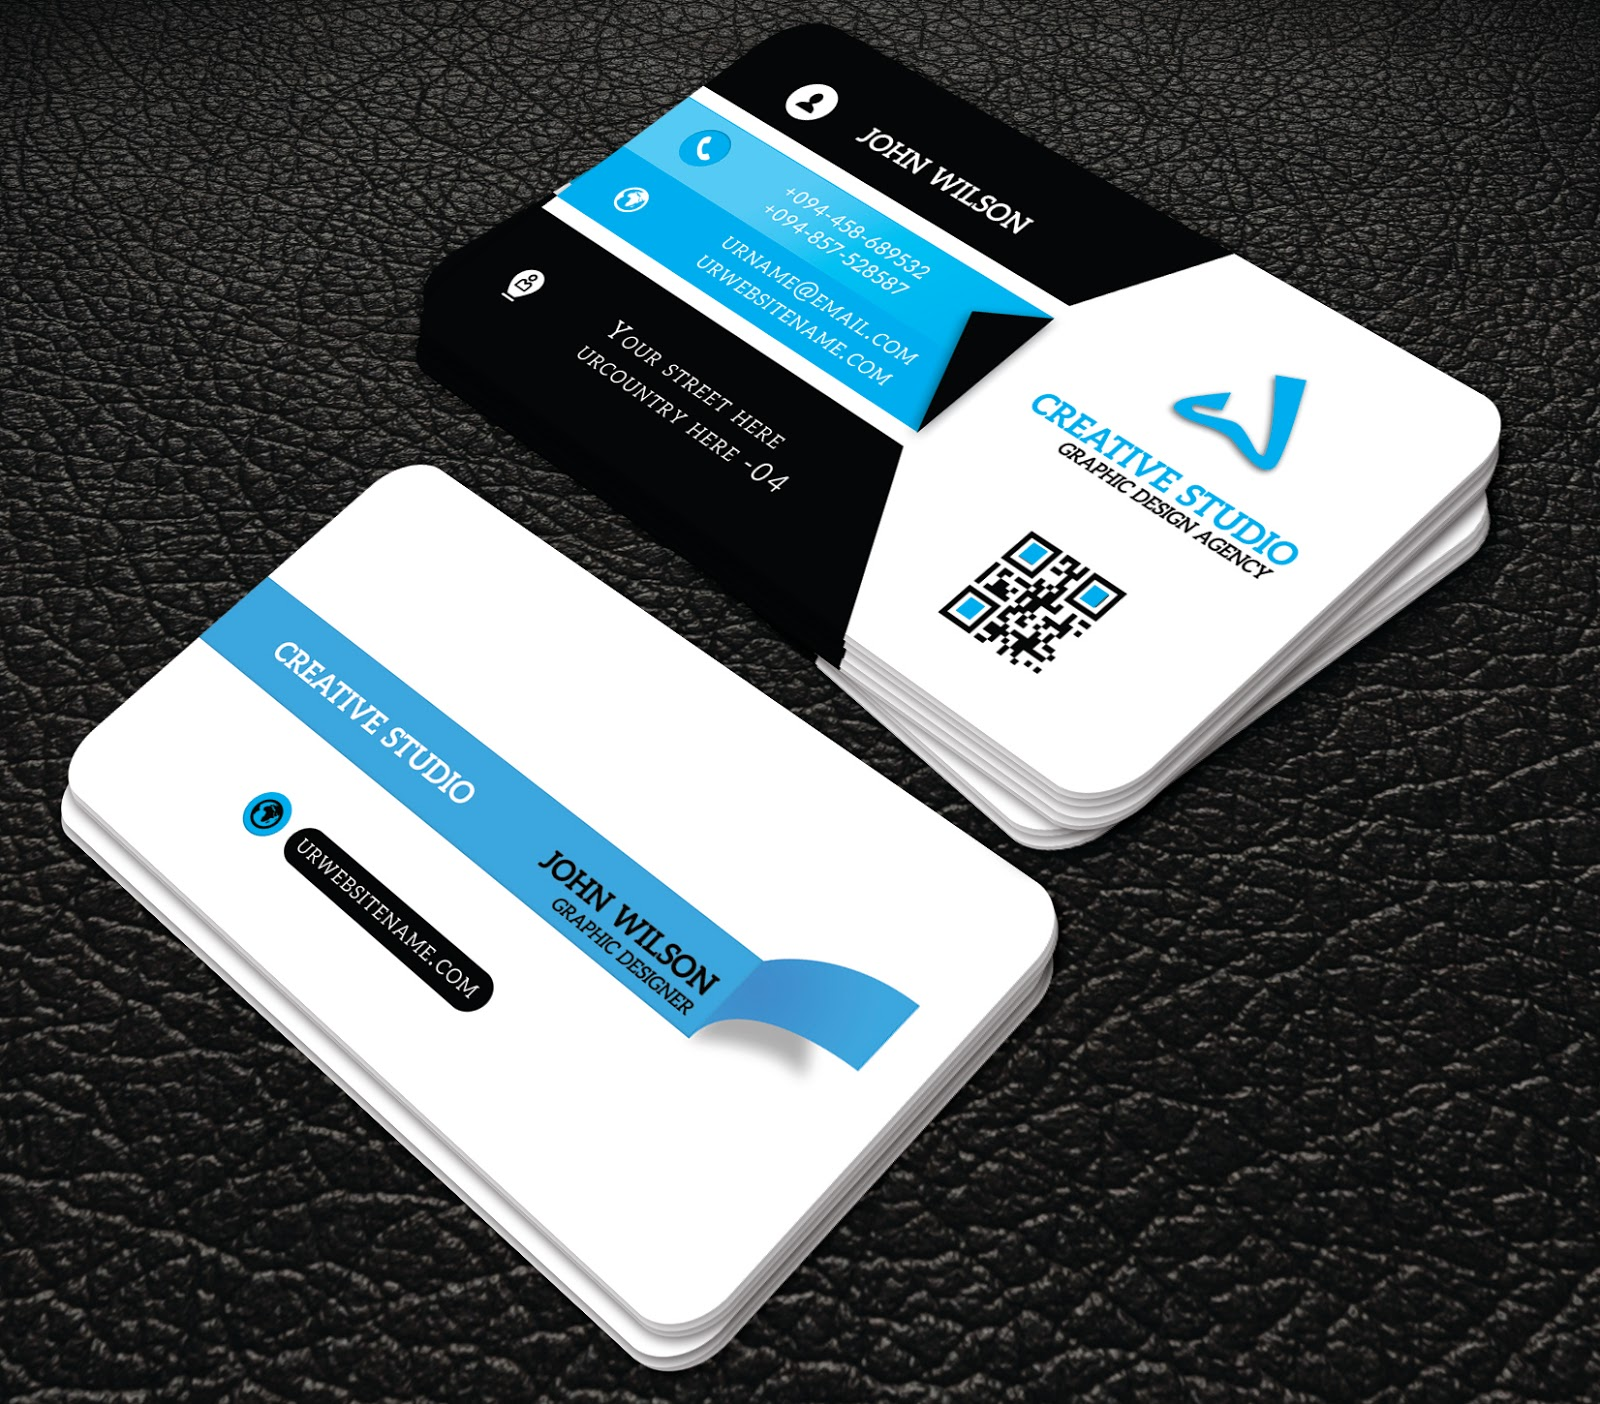 My business cards free software images card design and card template my professional business cards software images card design and my professional business cards software choice image reheart Choice Image